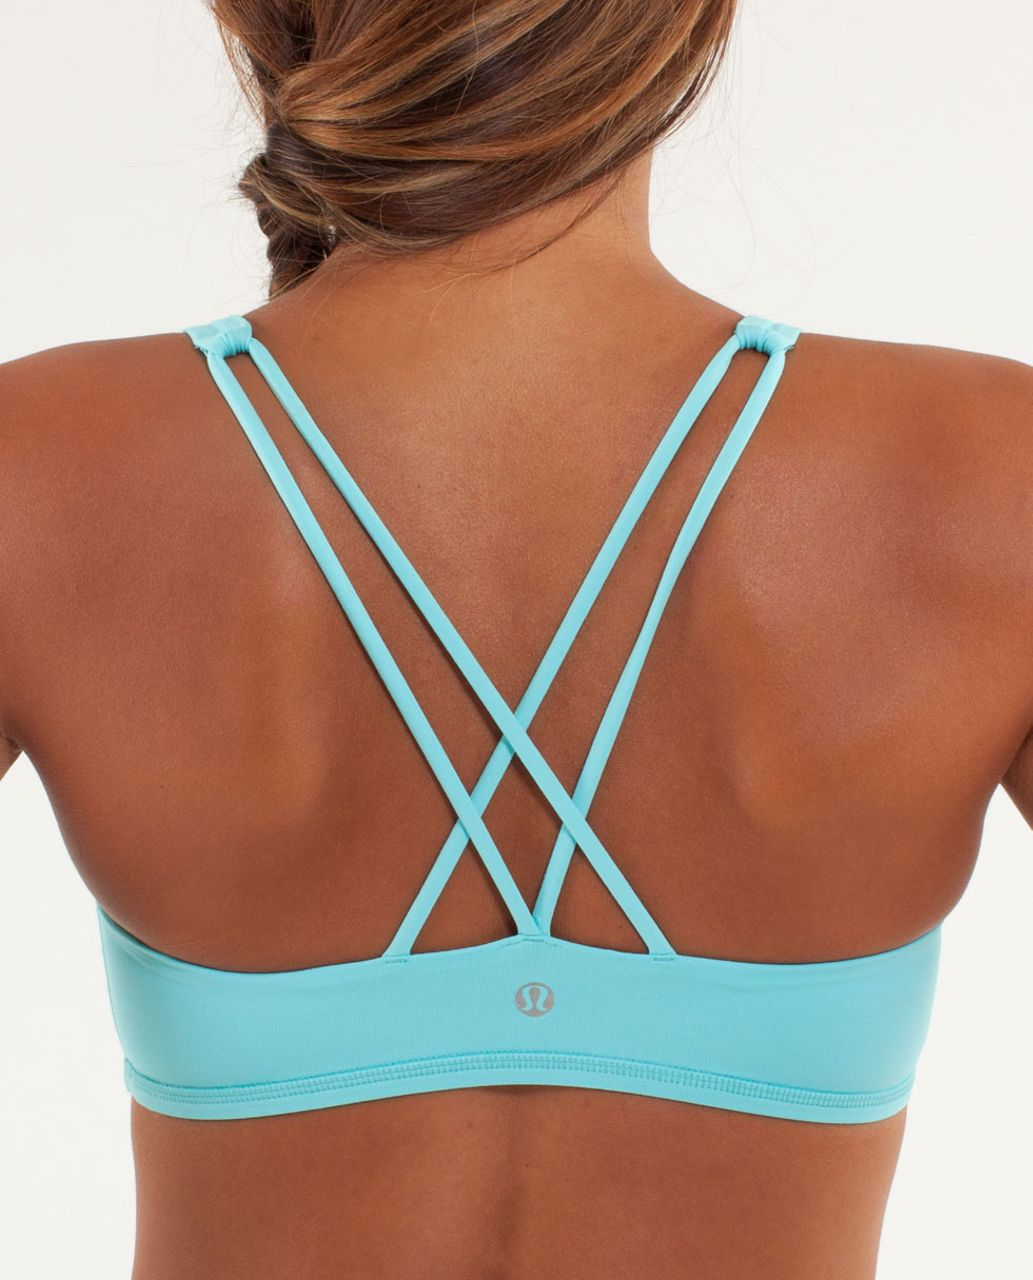 Lululemon Free To Be Bra (First Release) - Angel Blue